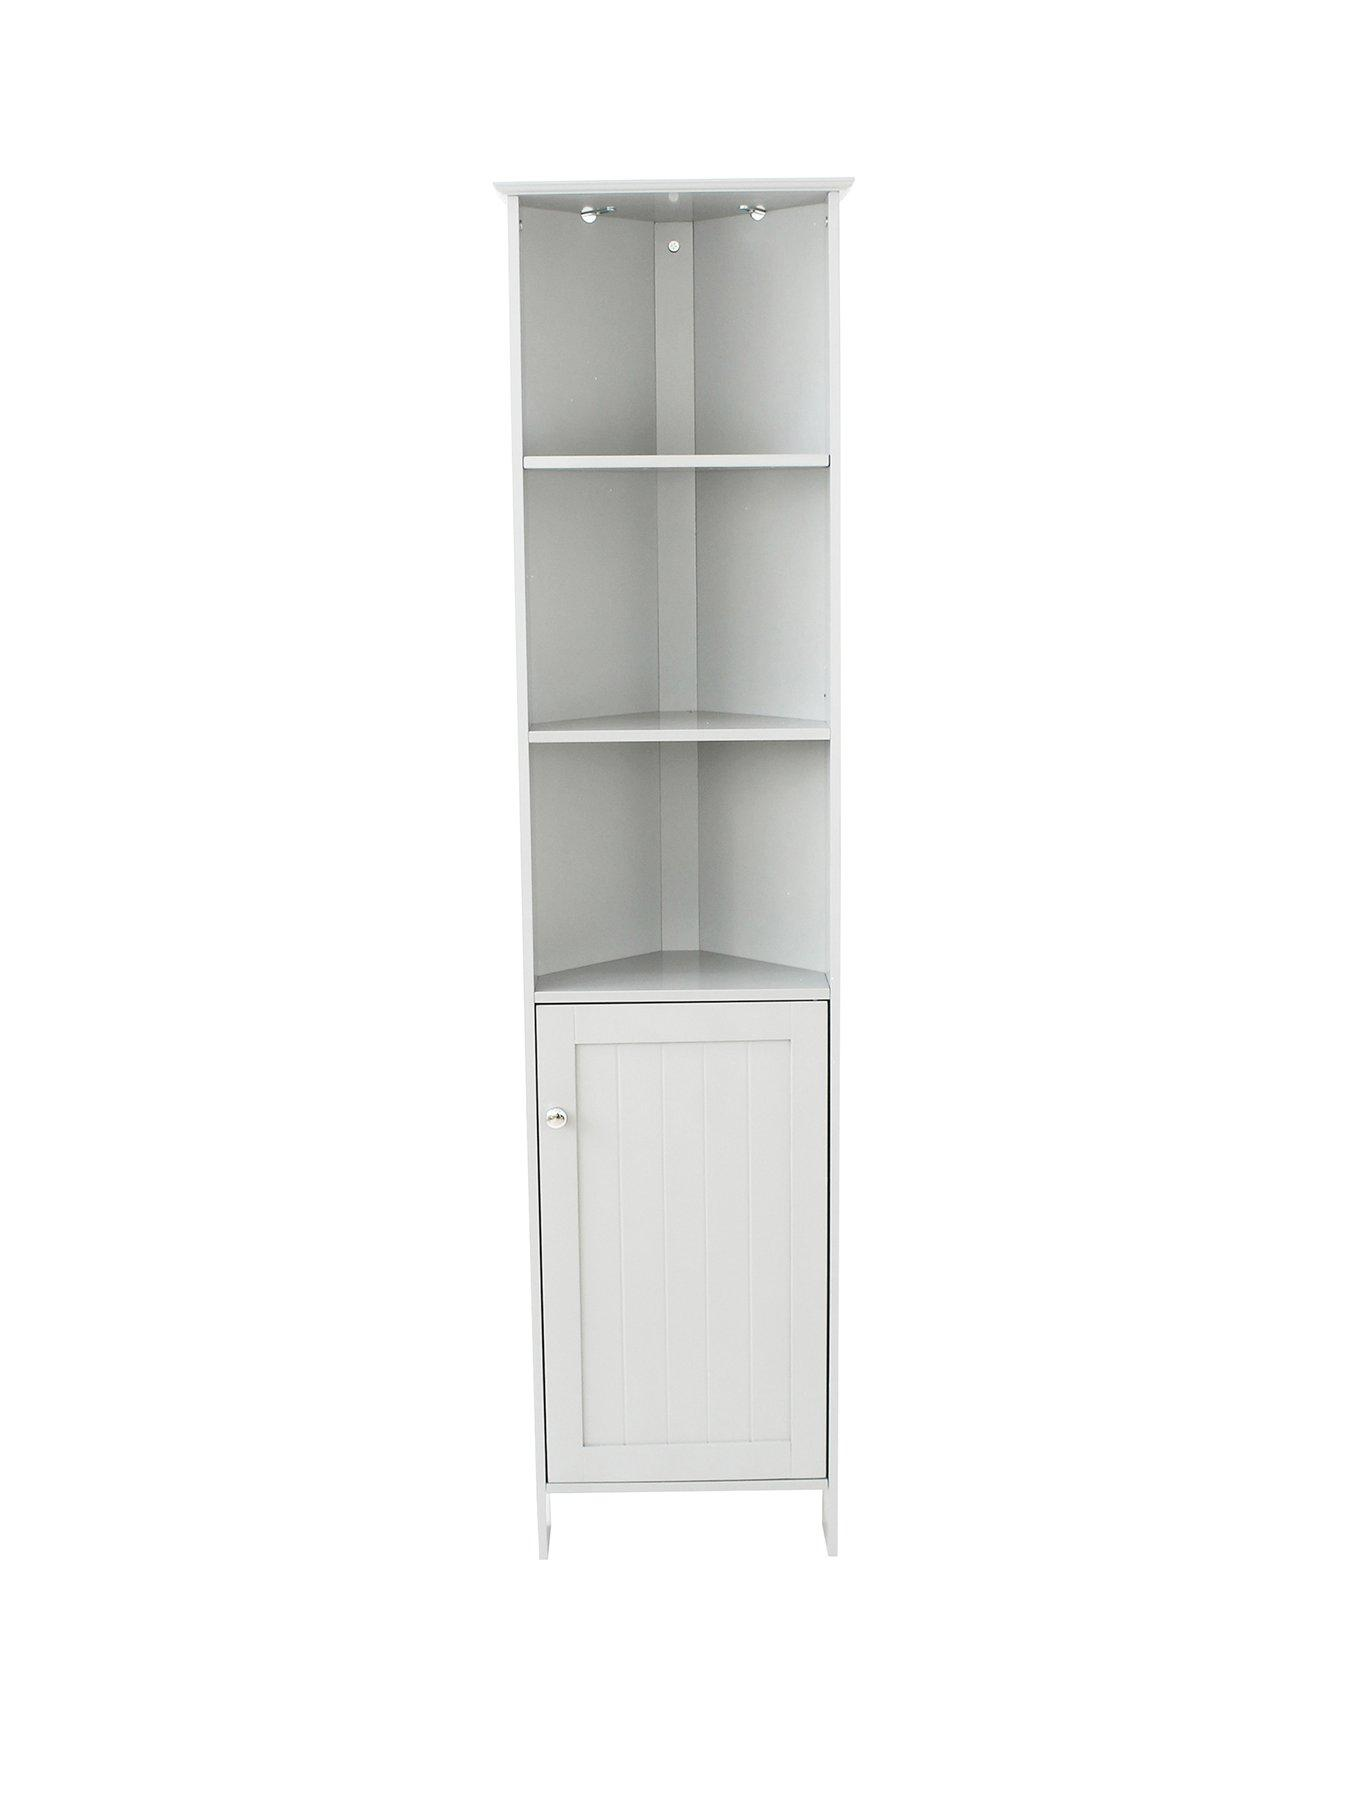 Cupboard With Shelves Blue Canyon Narrow Storage Cabinet Unit Storage Cupboard White 18 X 18 X 82 Cm Desmoinesfencecompany Com